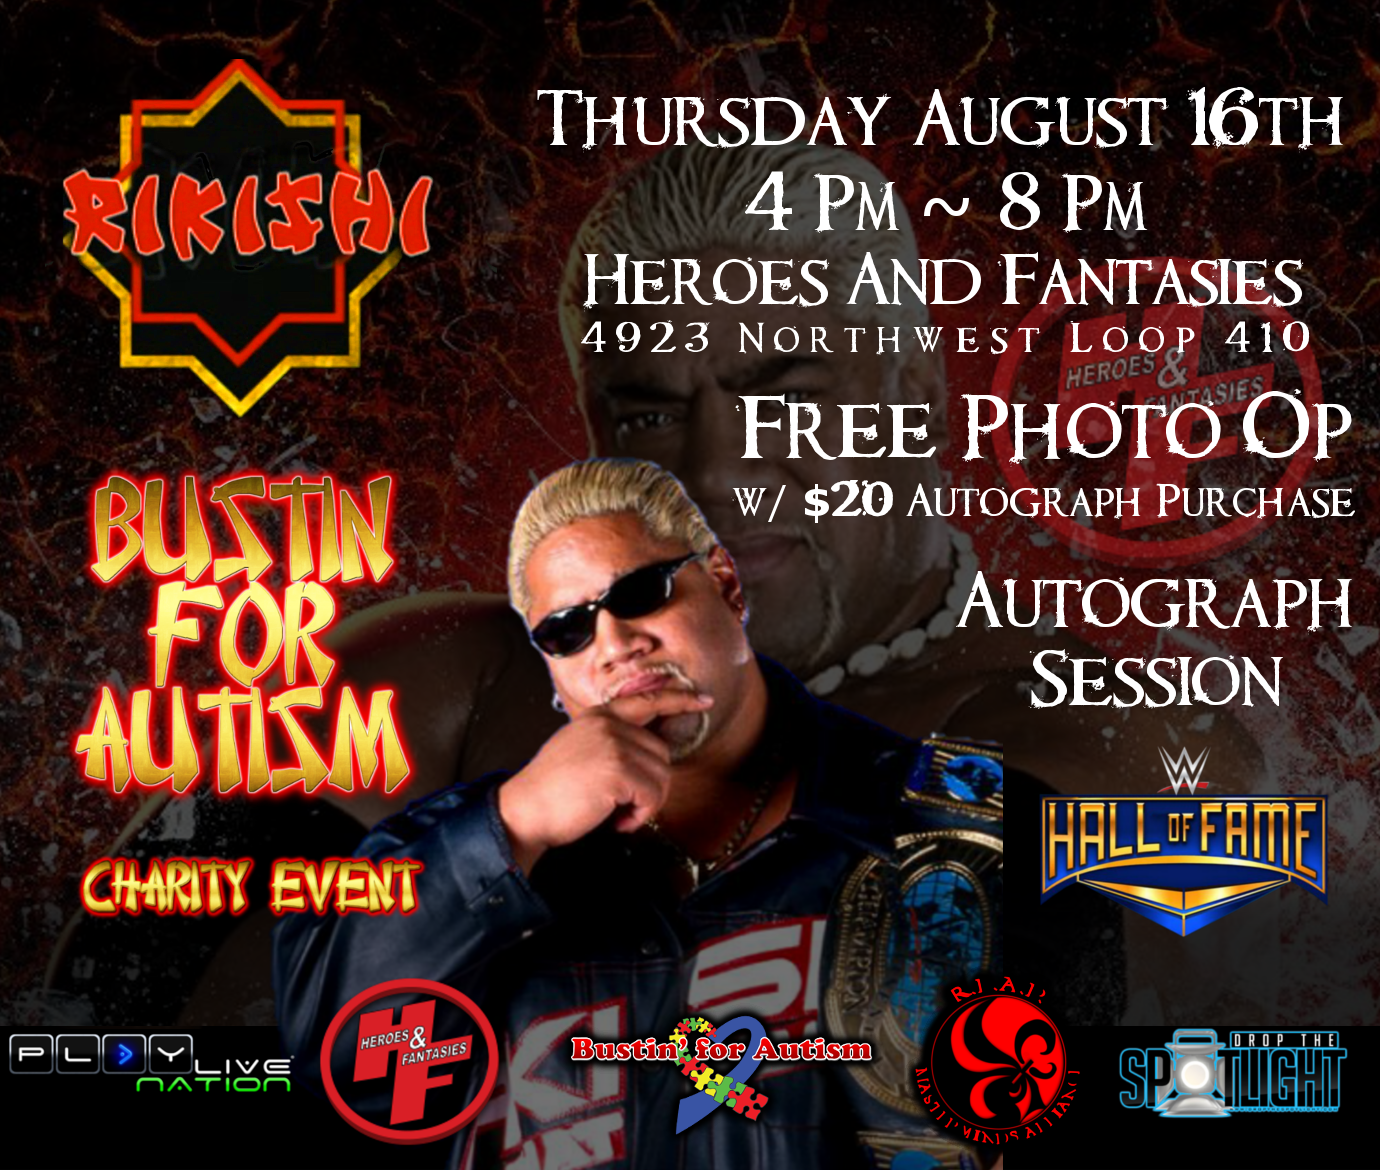 Bustin' For Autism Charity Event - Making a Difference with WWE HOF Rikishi, Thursday, August 16, 2018 - Heroes & Fantasies 4923 Nortwest Loop 410, San Antonio, TX